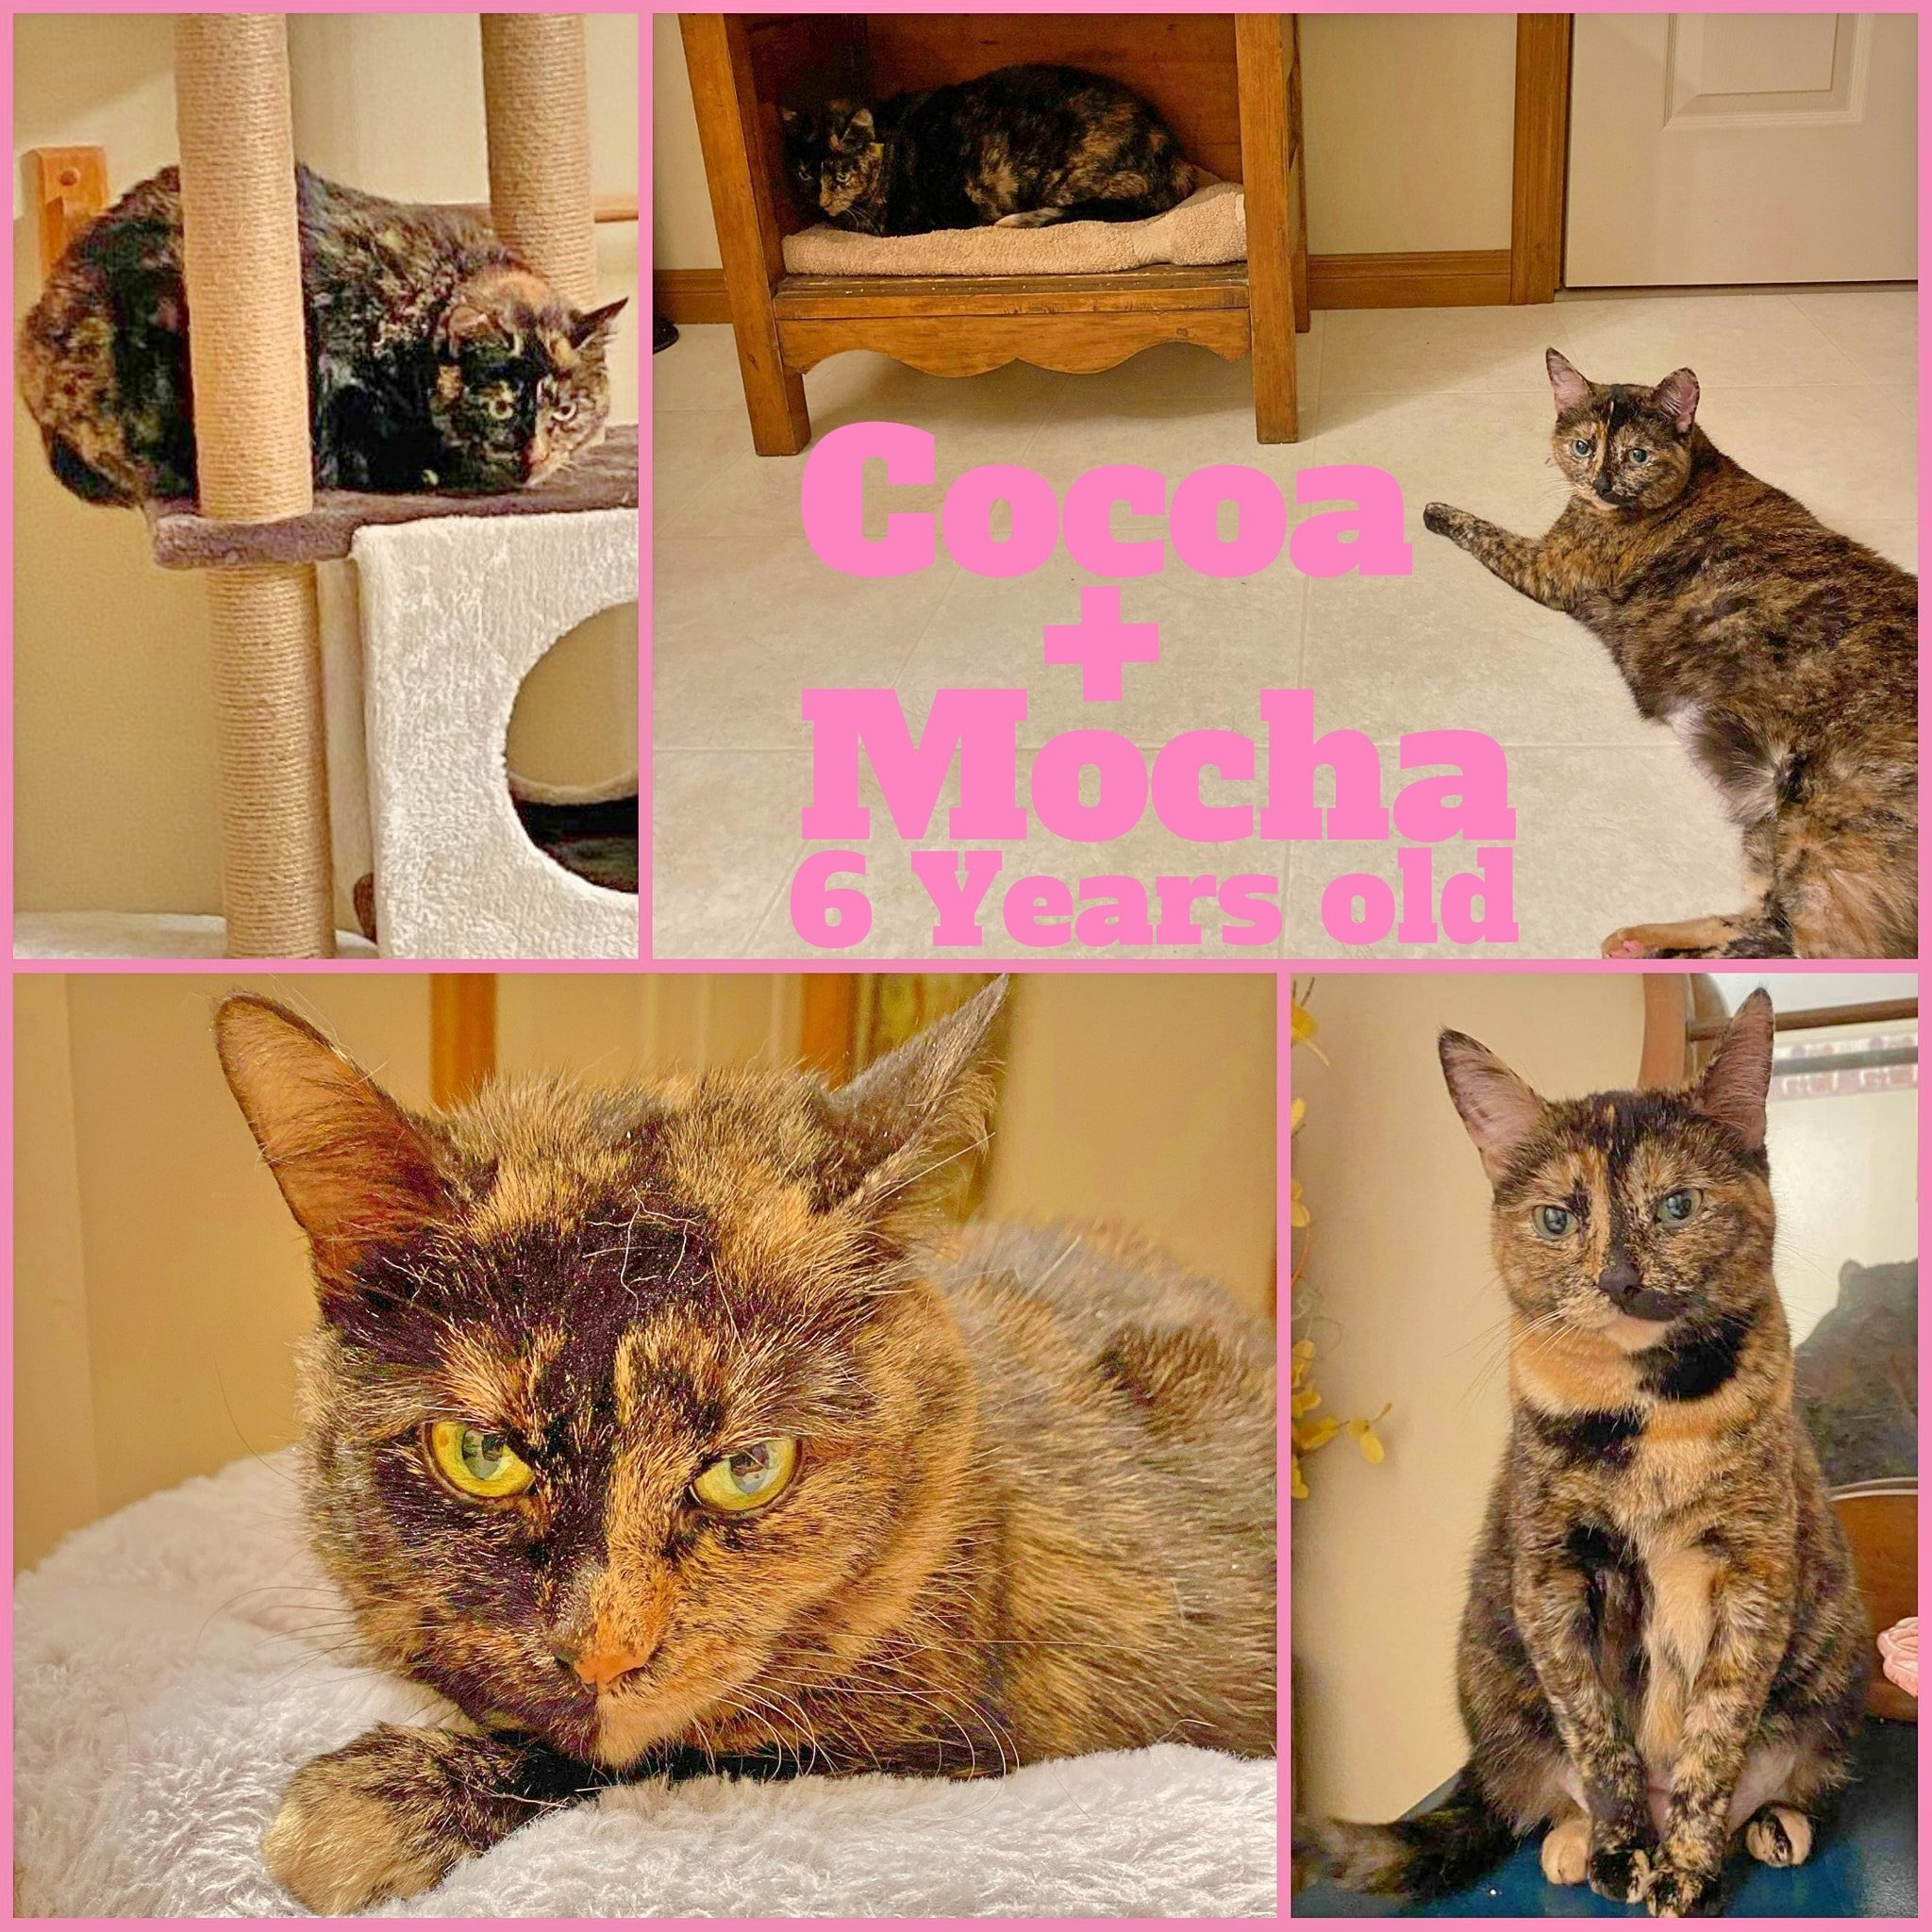 Cocoa & Mocha-Females- 6 Years old